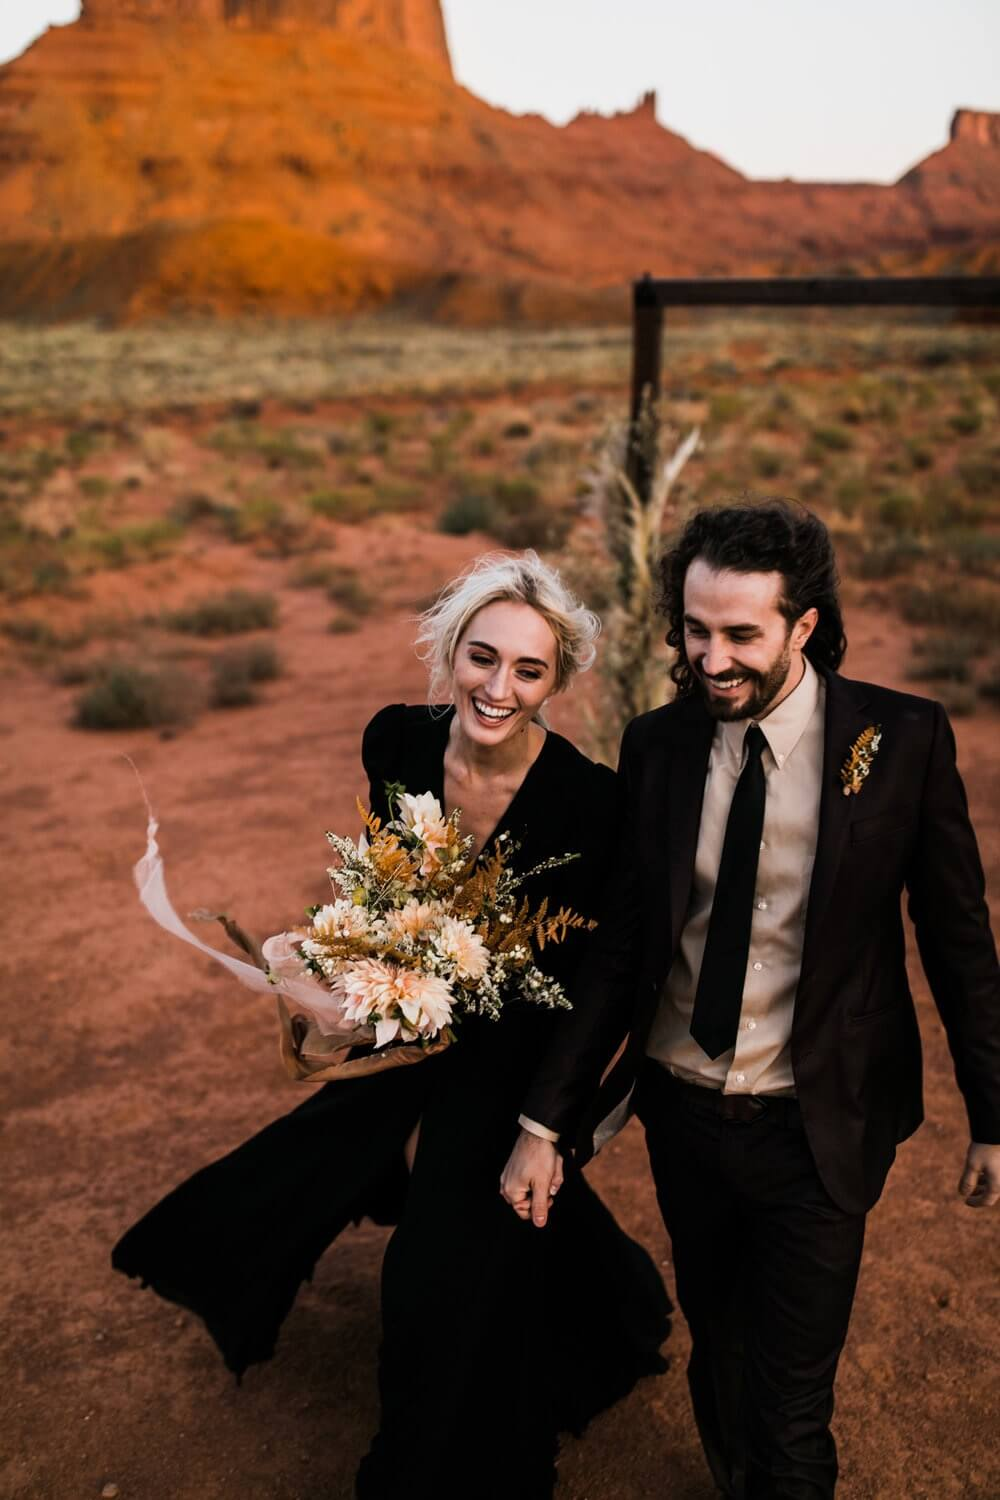 Hearnes Elopement Photography - moab utah